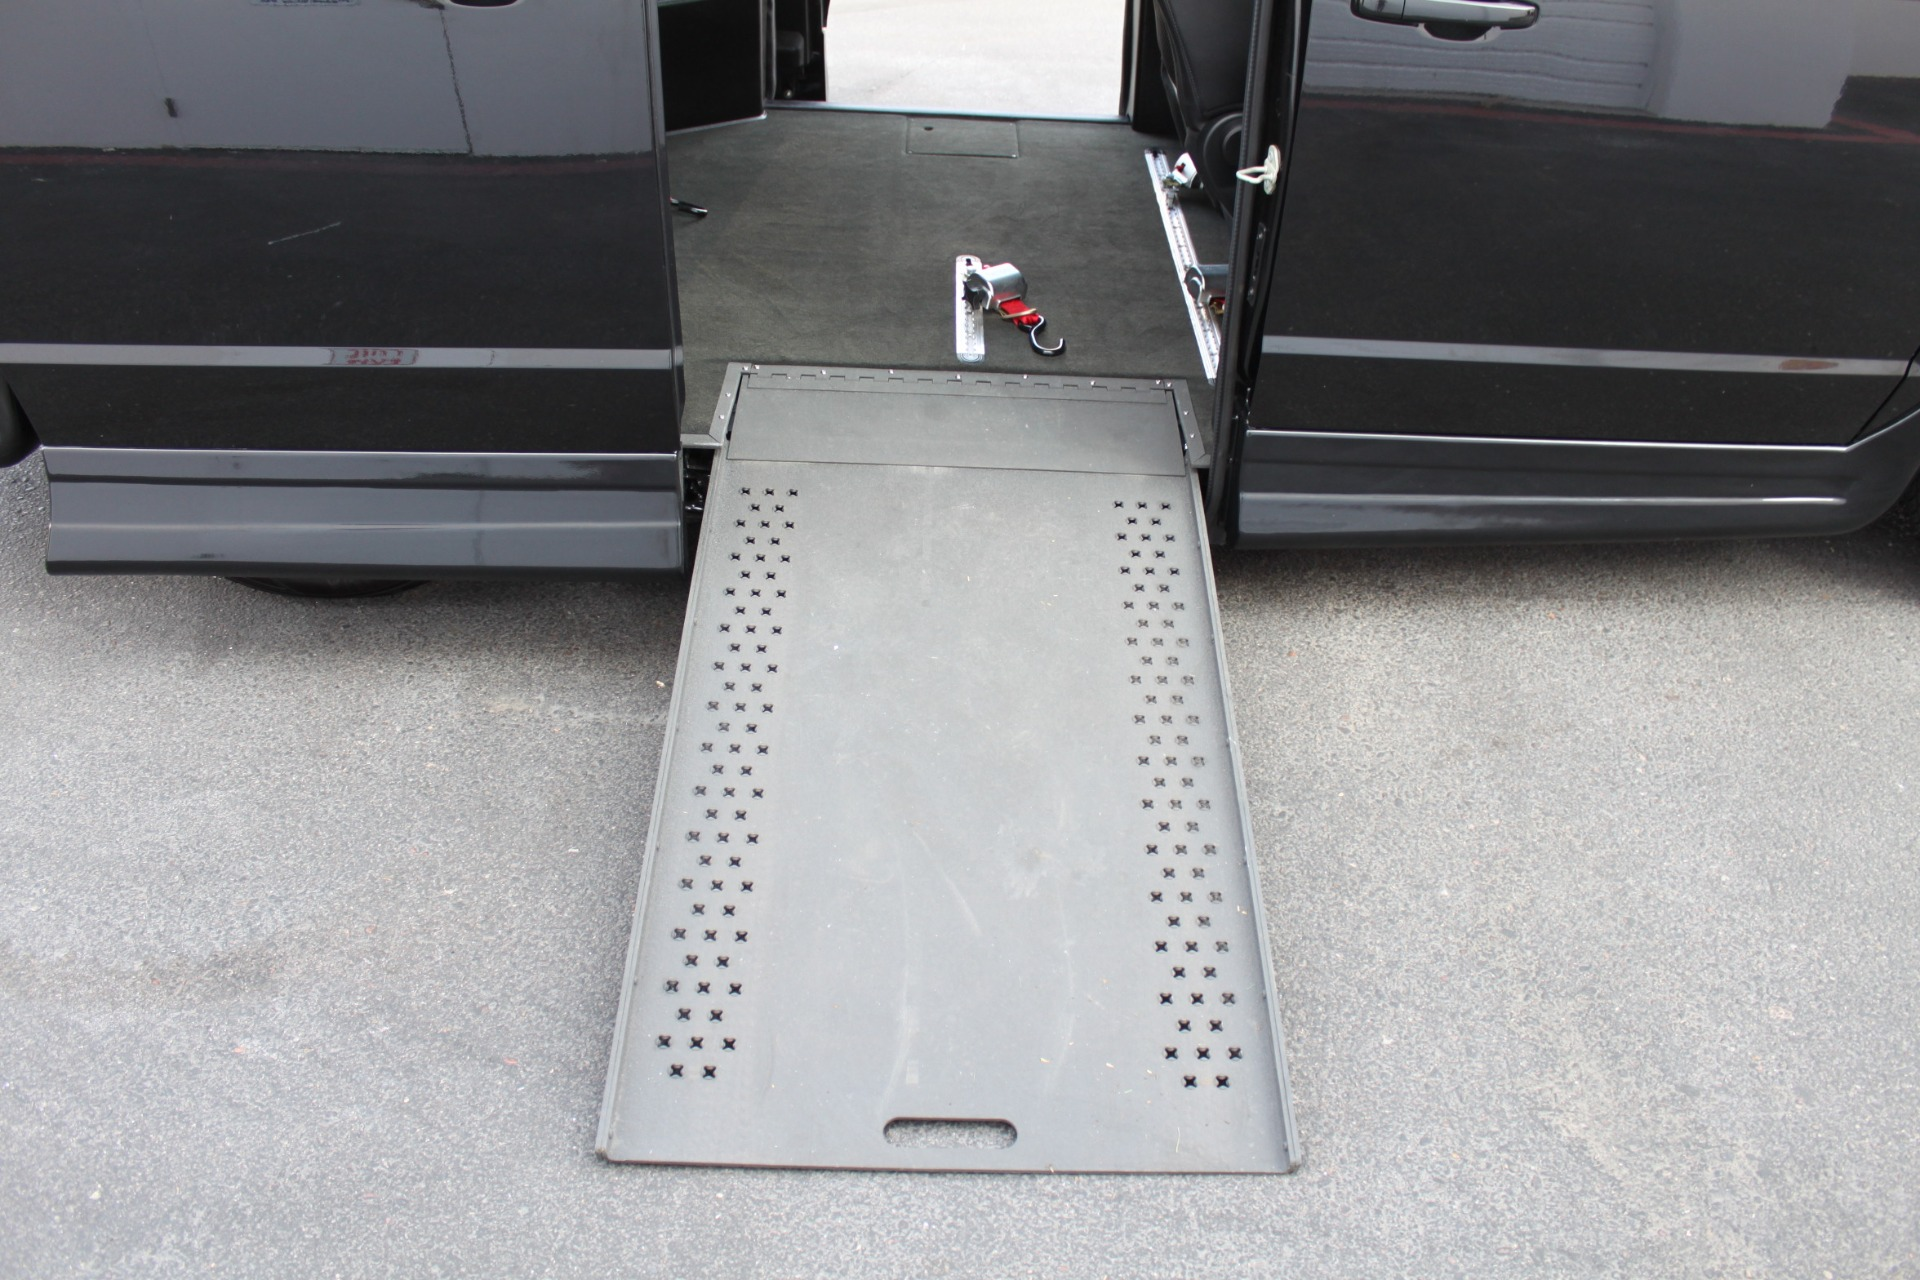 Used-2018-Dodge-Grand-Caravan-SXT-Rollx-Mobility-Conversion-Ford